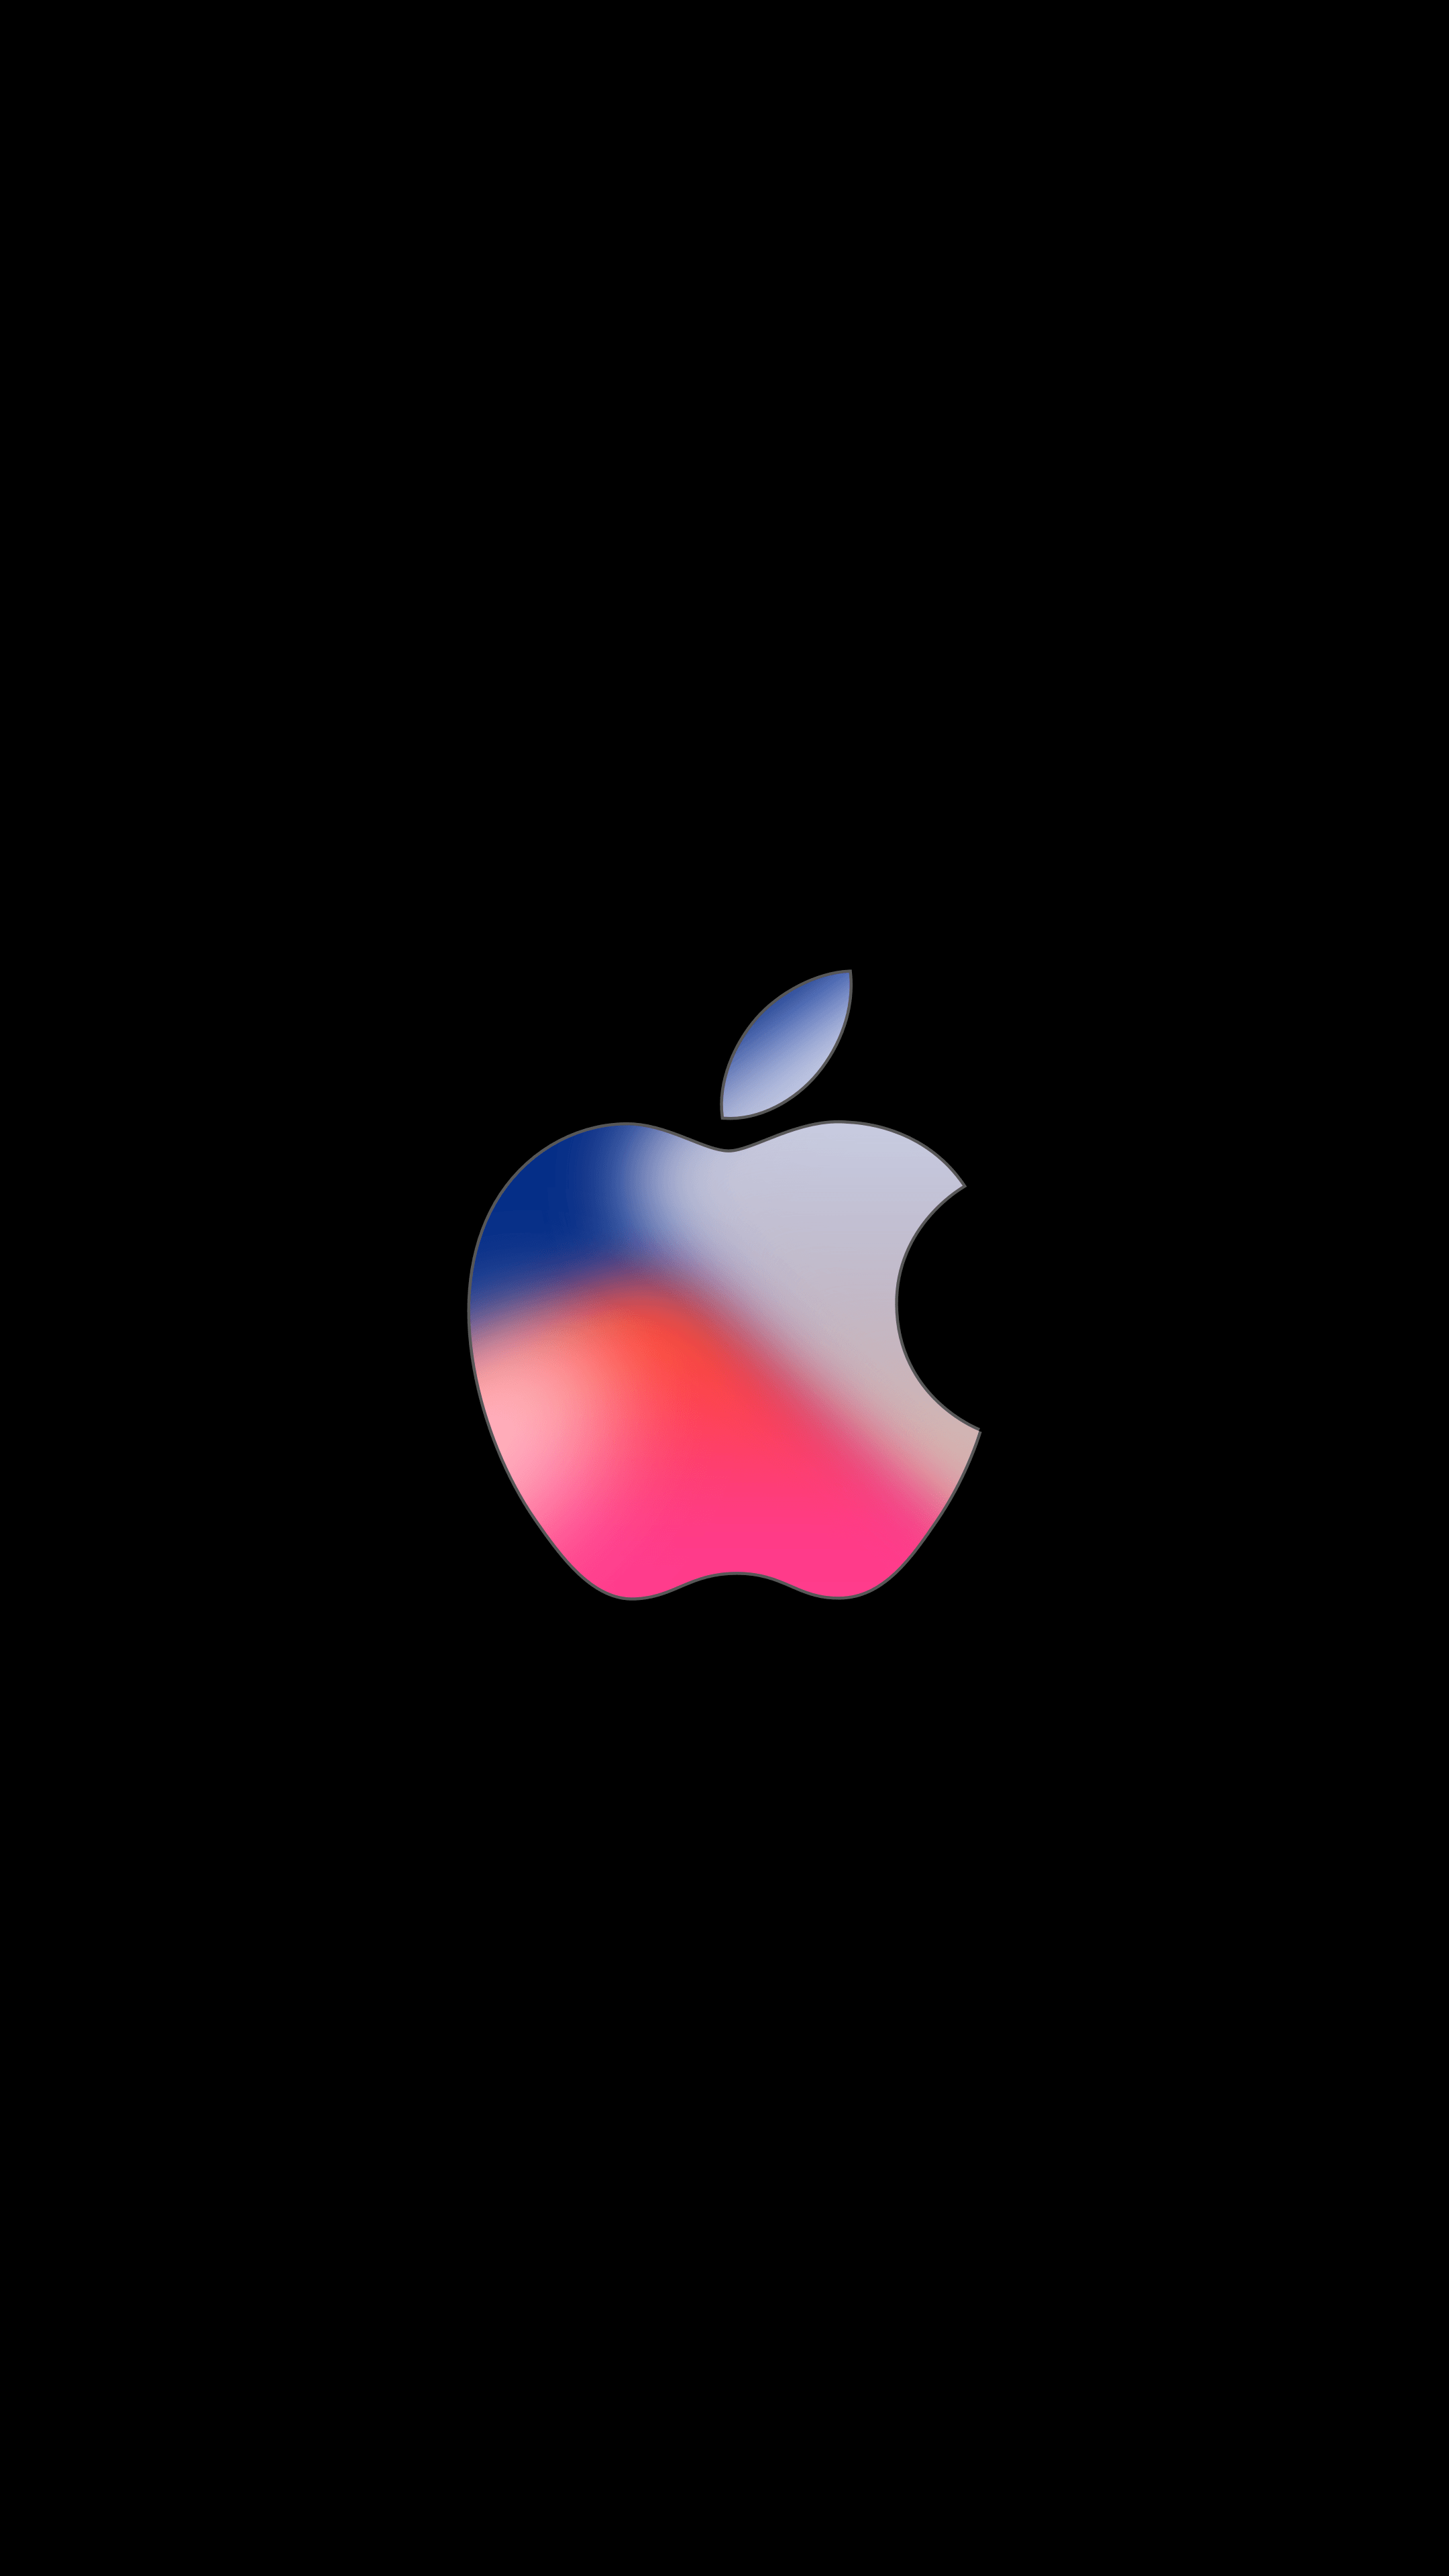 iPhone XR 4K Wallpapers - Wallpaper Cave